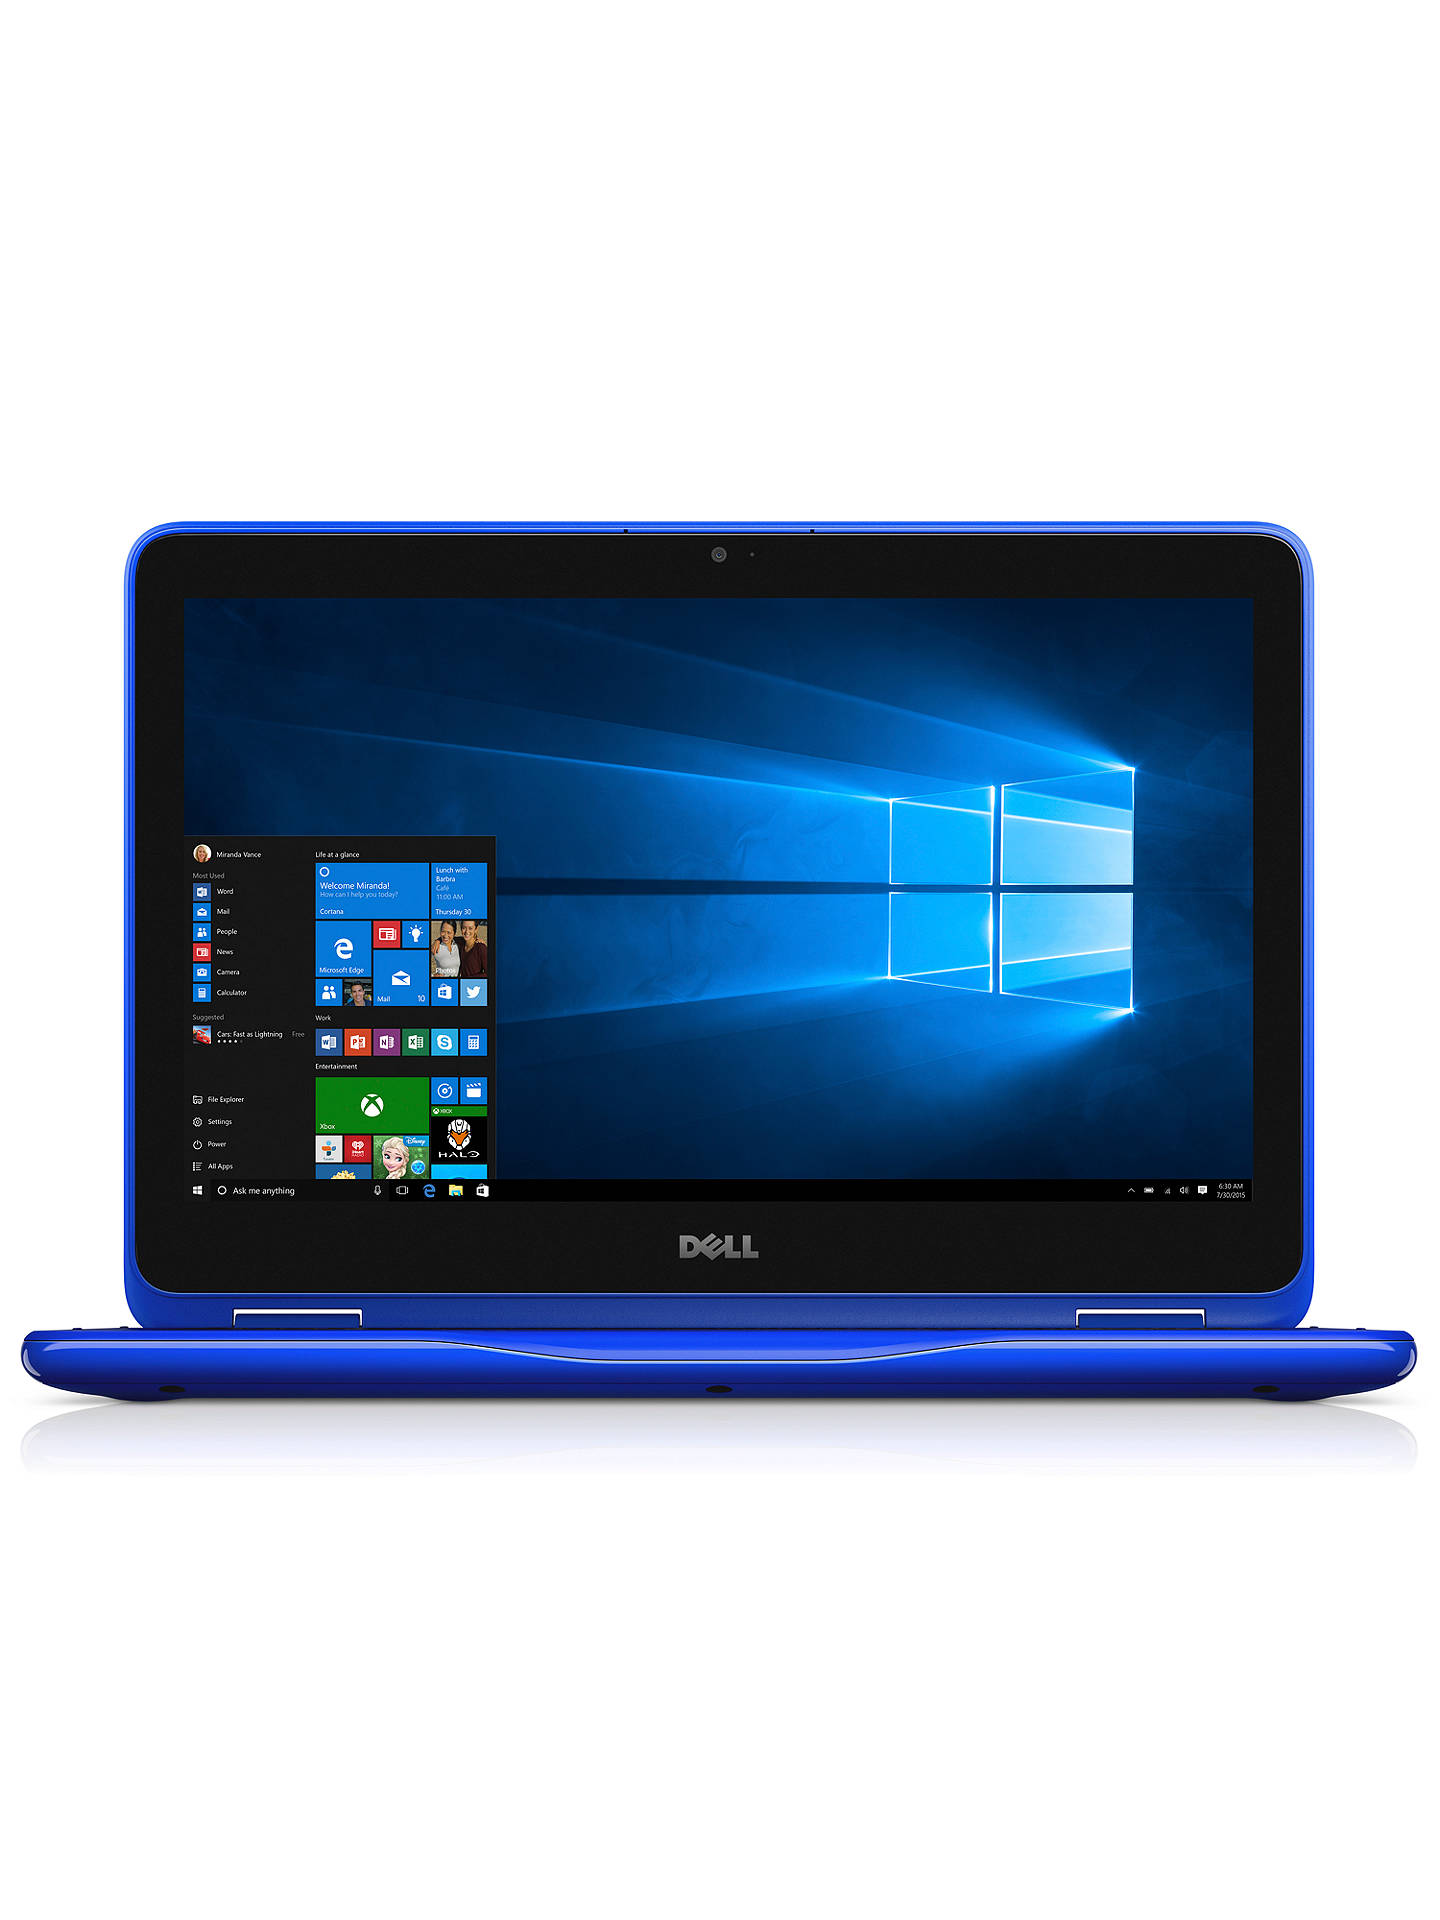 Dell Inspiron 11 3000 Series 2 In 1 Laptop Intel Celeron